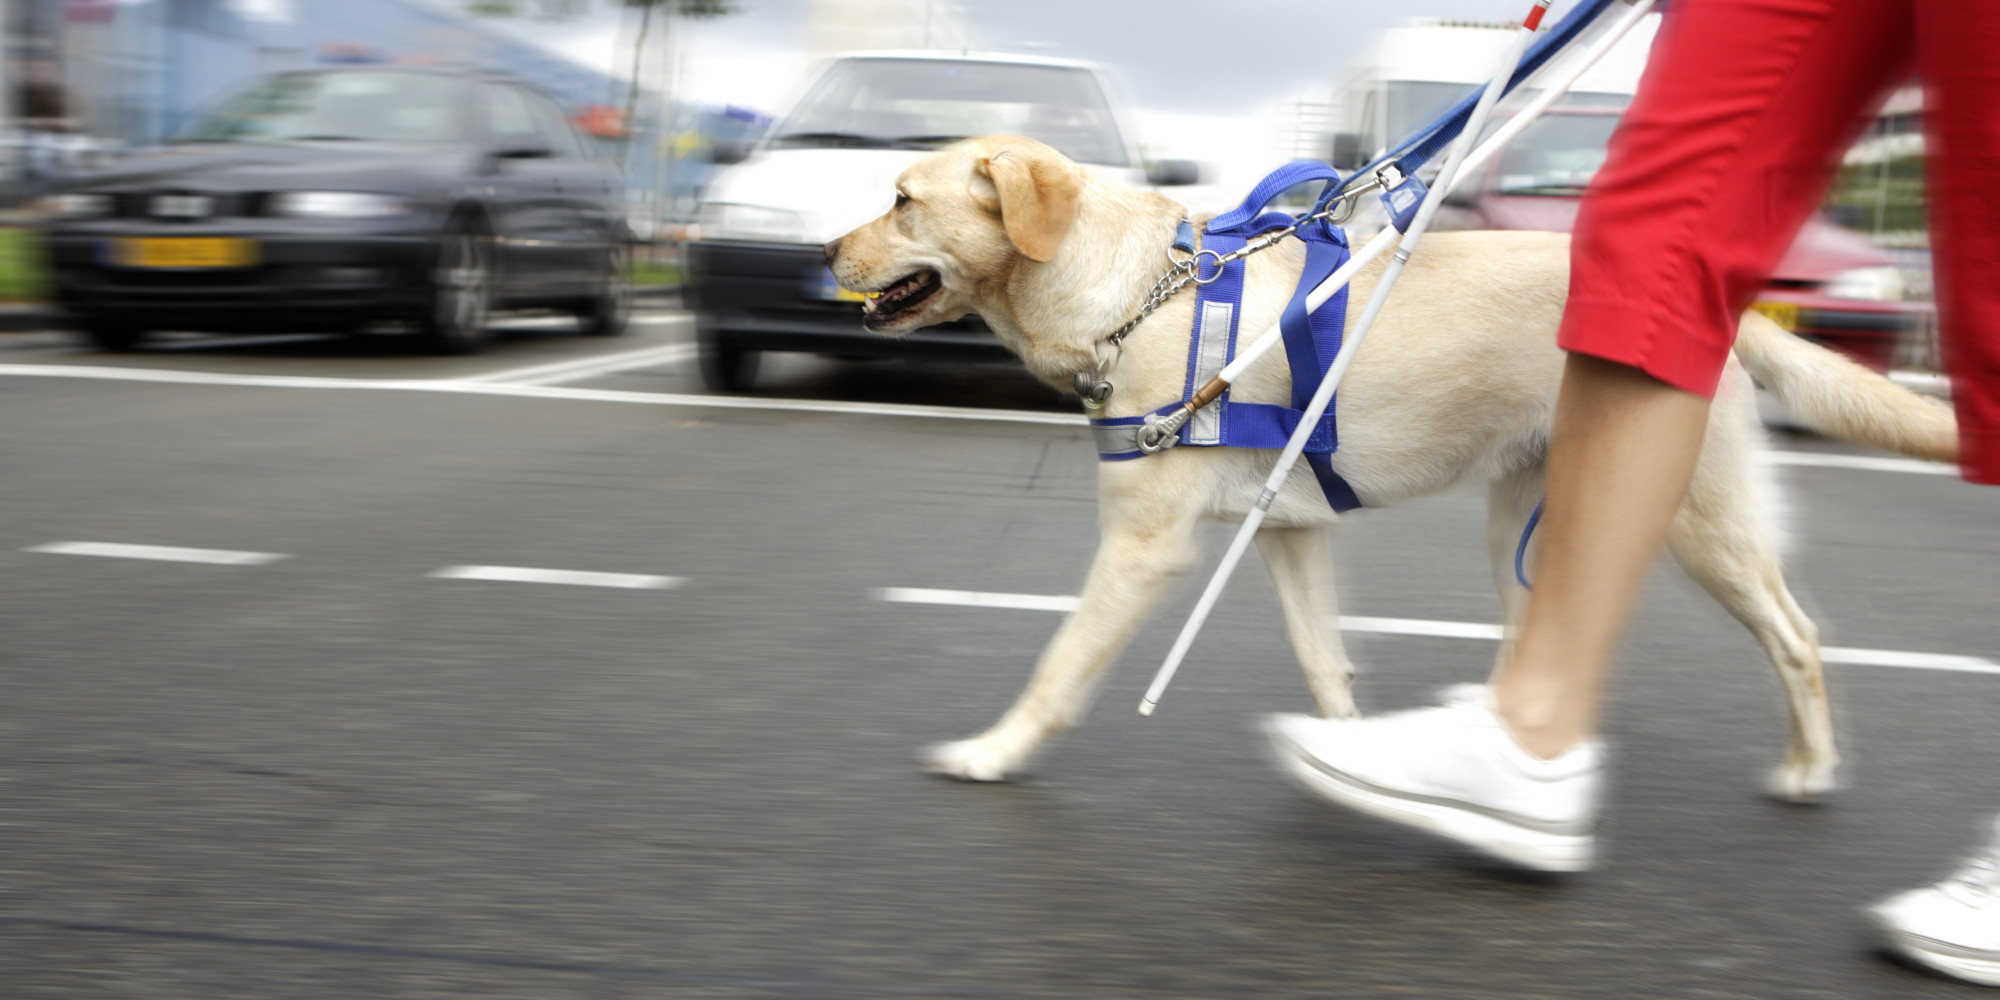 Guide dog leads person across busy street